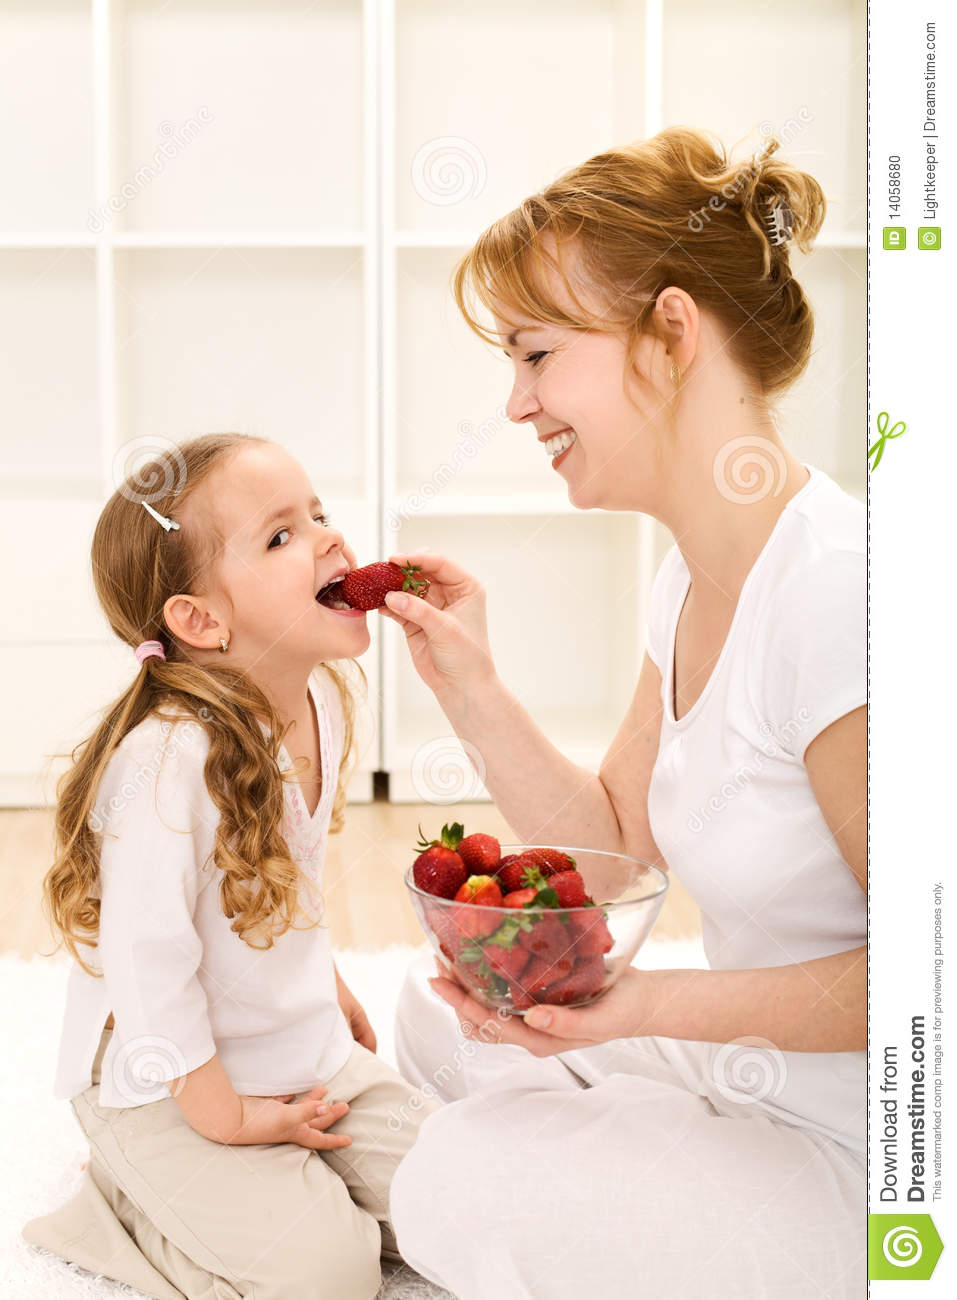 Happy healthy little girl and her mother eating fresh strawberries